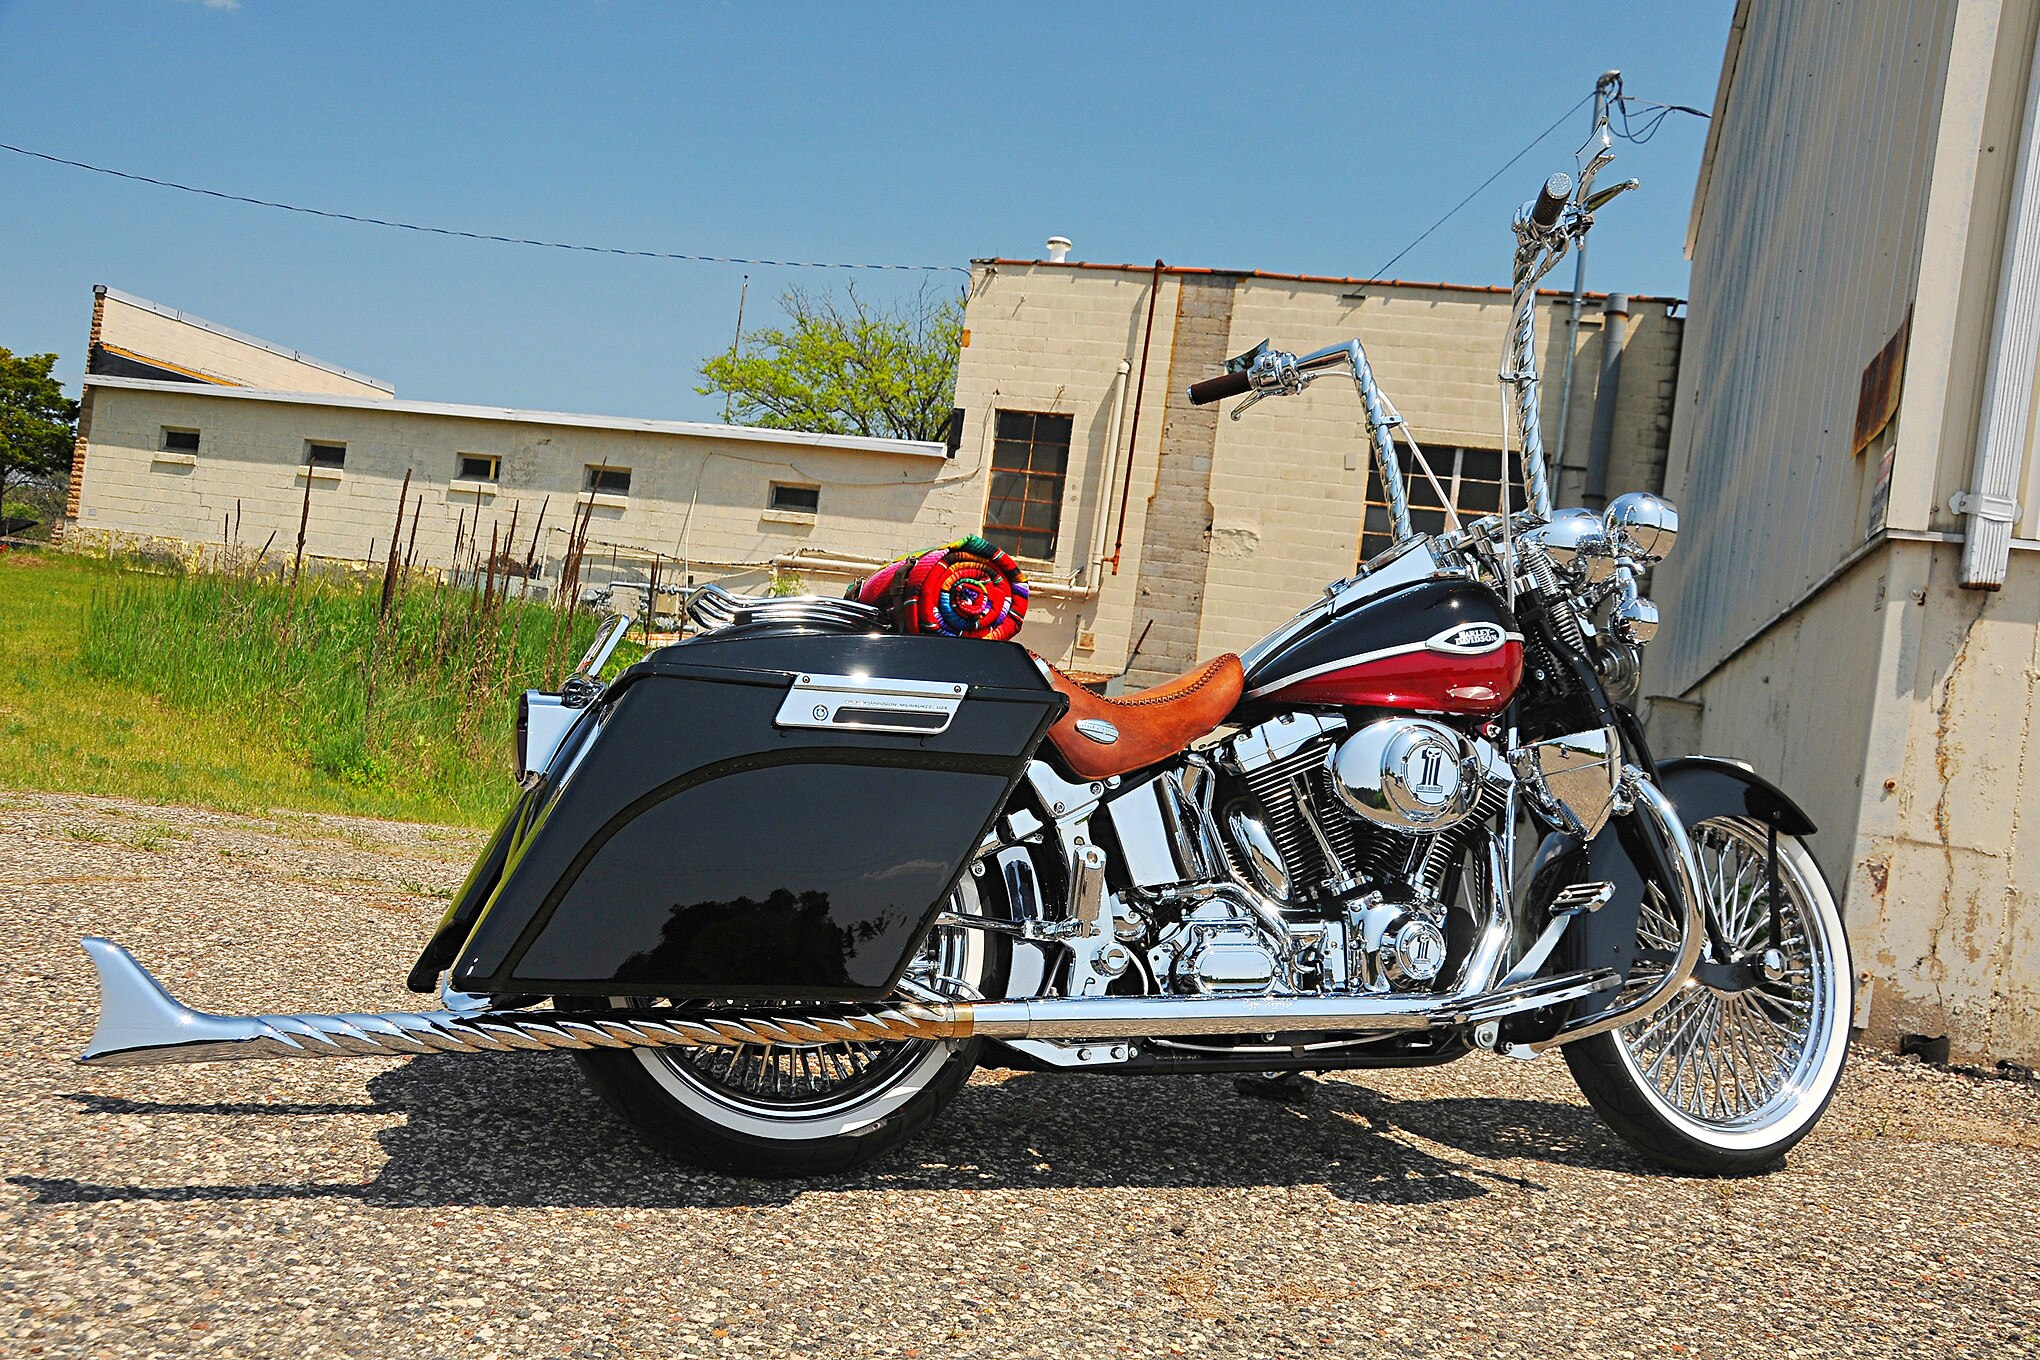 Harley Davidson Softail Springer Right on 2005 Buick Regal